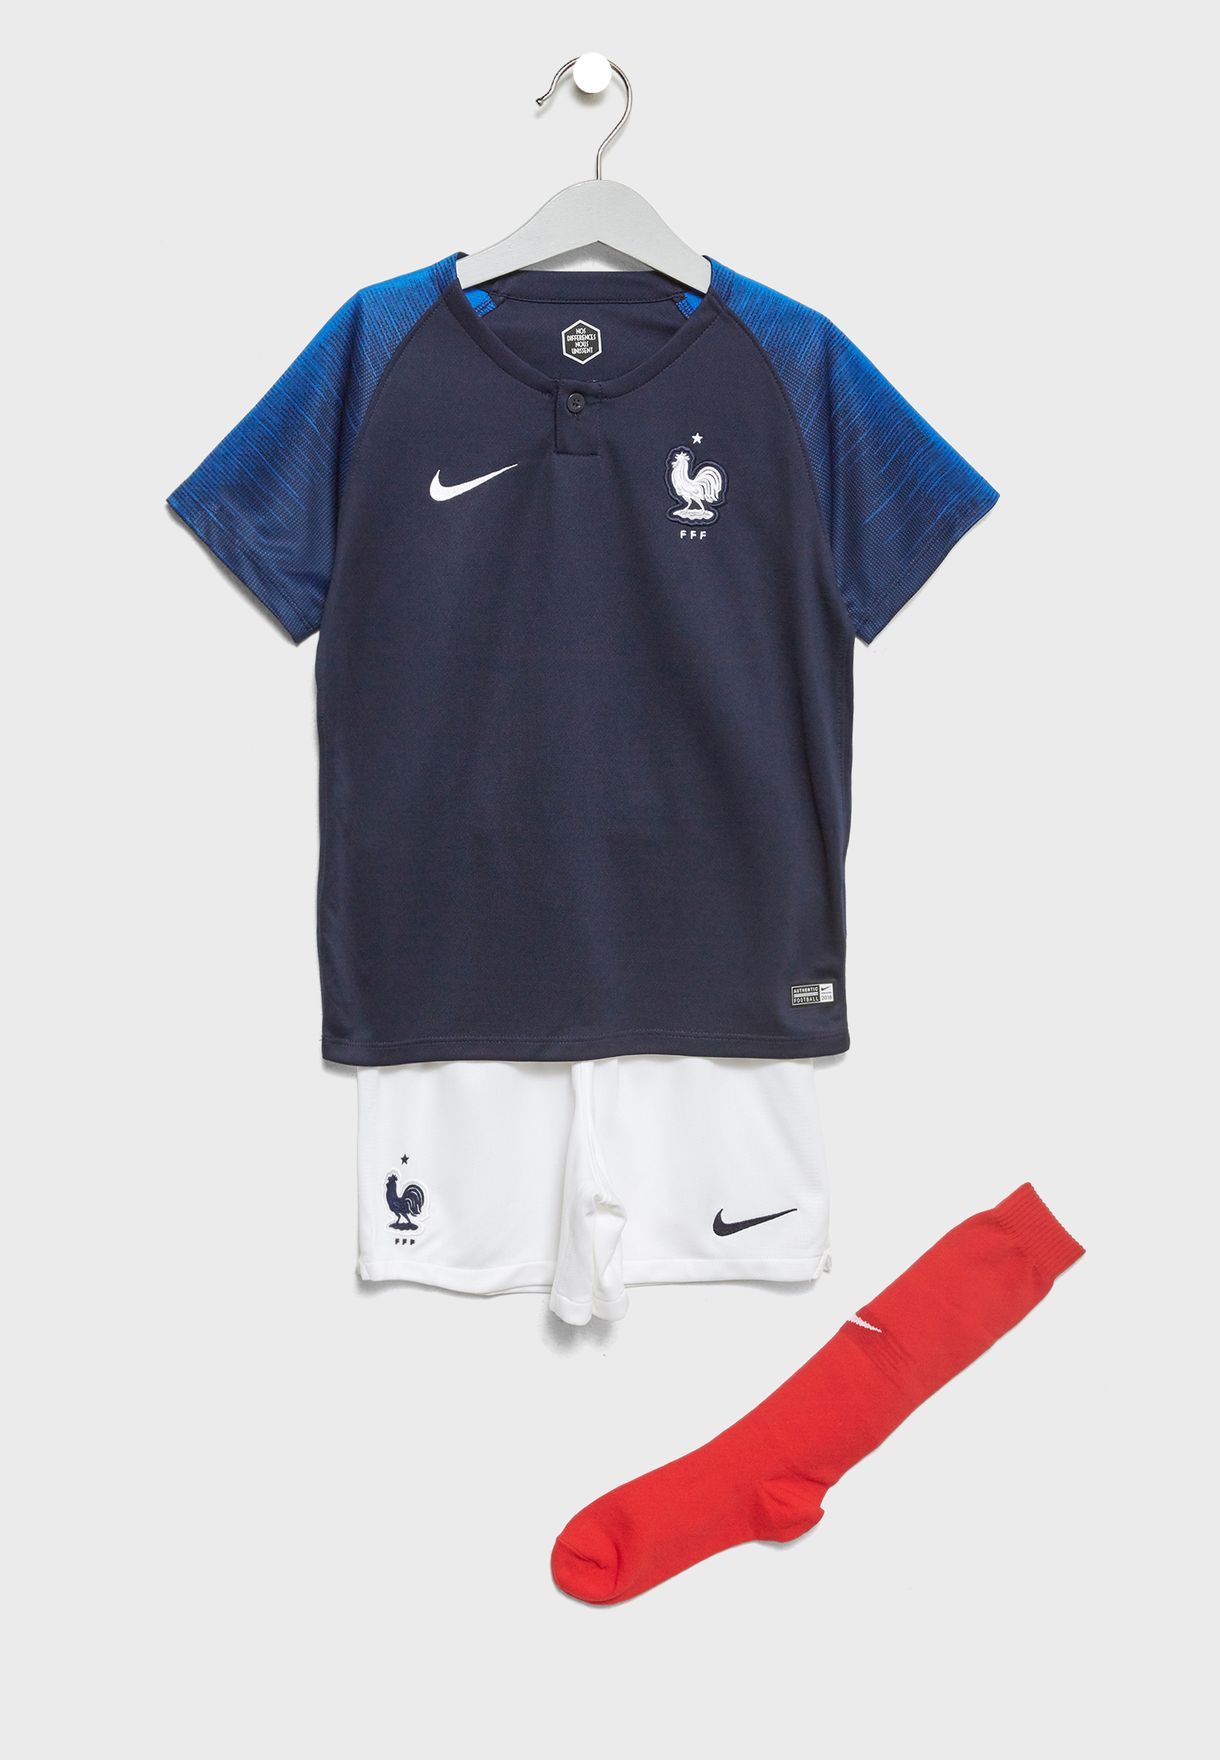 96777564d08 Shop Nike white Youth France Home Kit 894043-451 for Kids in UAE ...